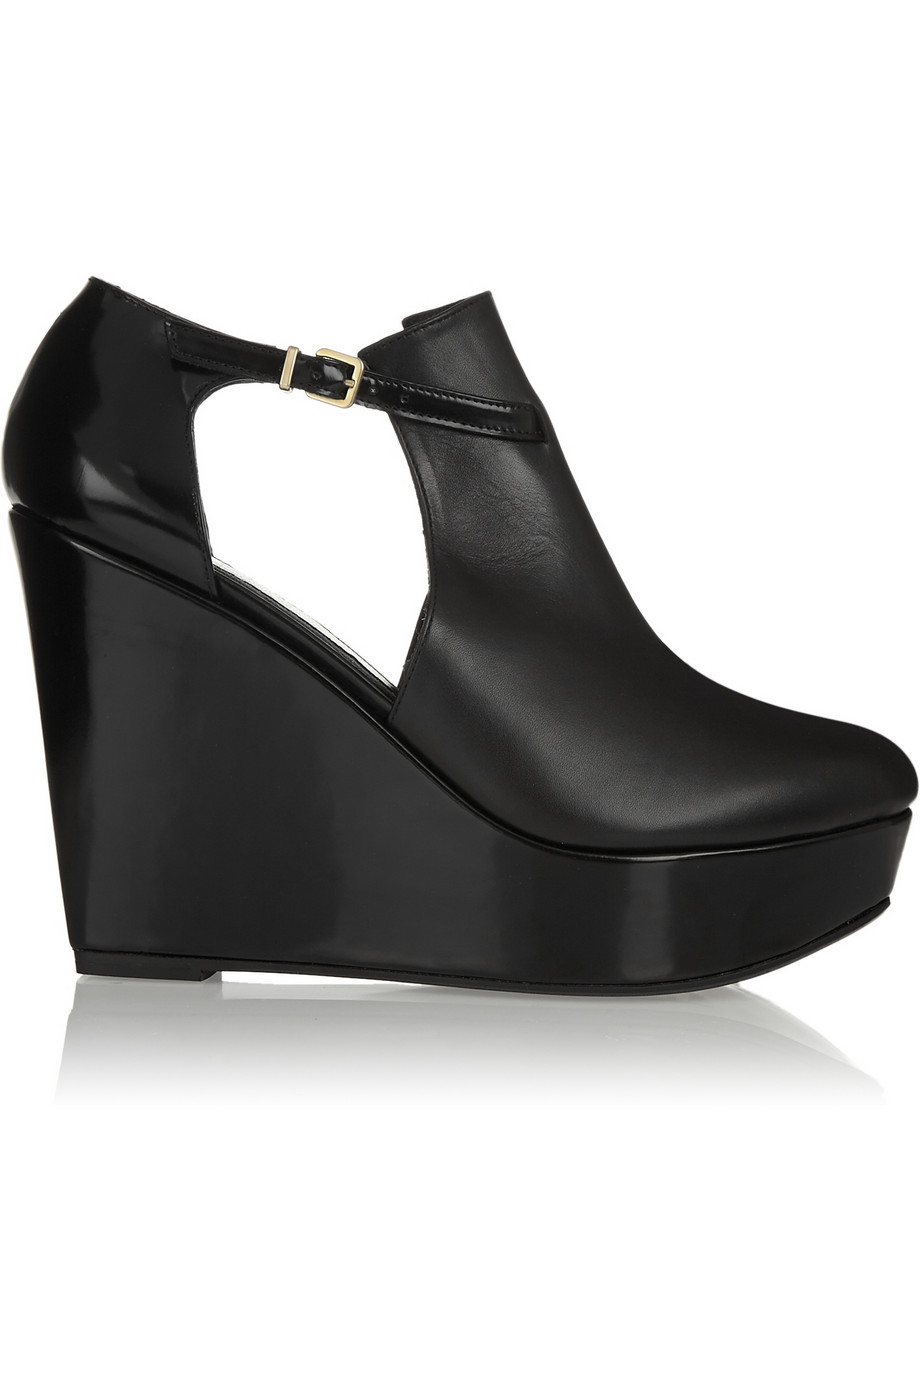 a724099163d Lyst - Robert Clergerie Filona Cutout Leather Wedge Boots in Black